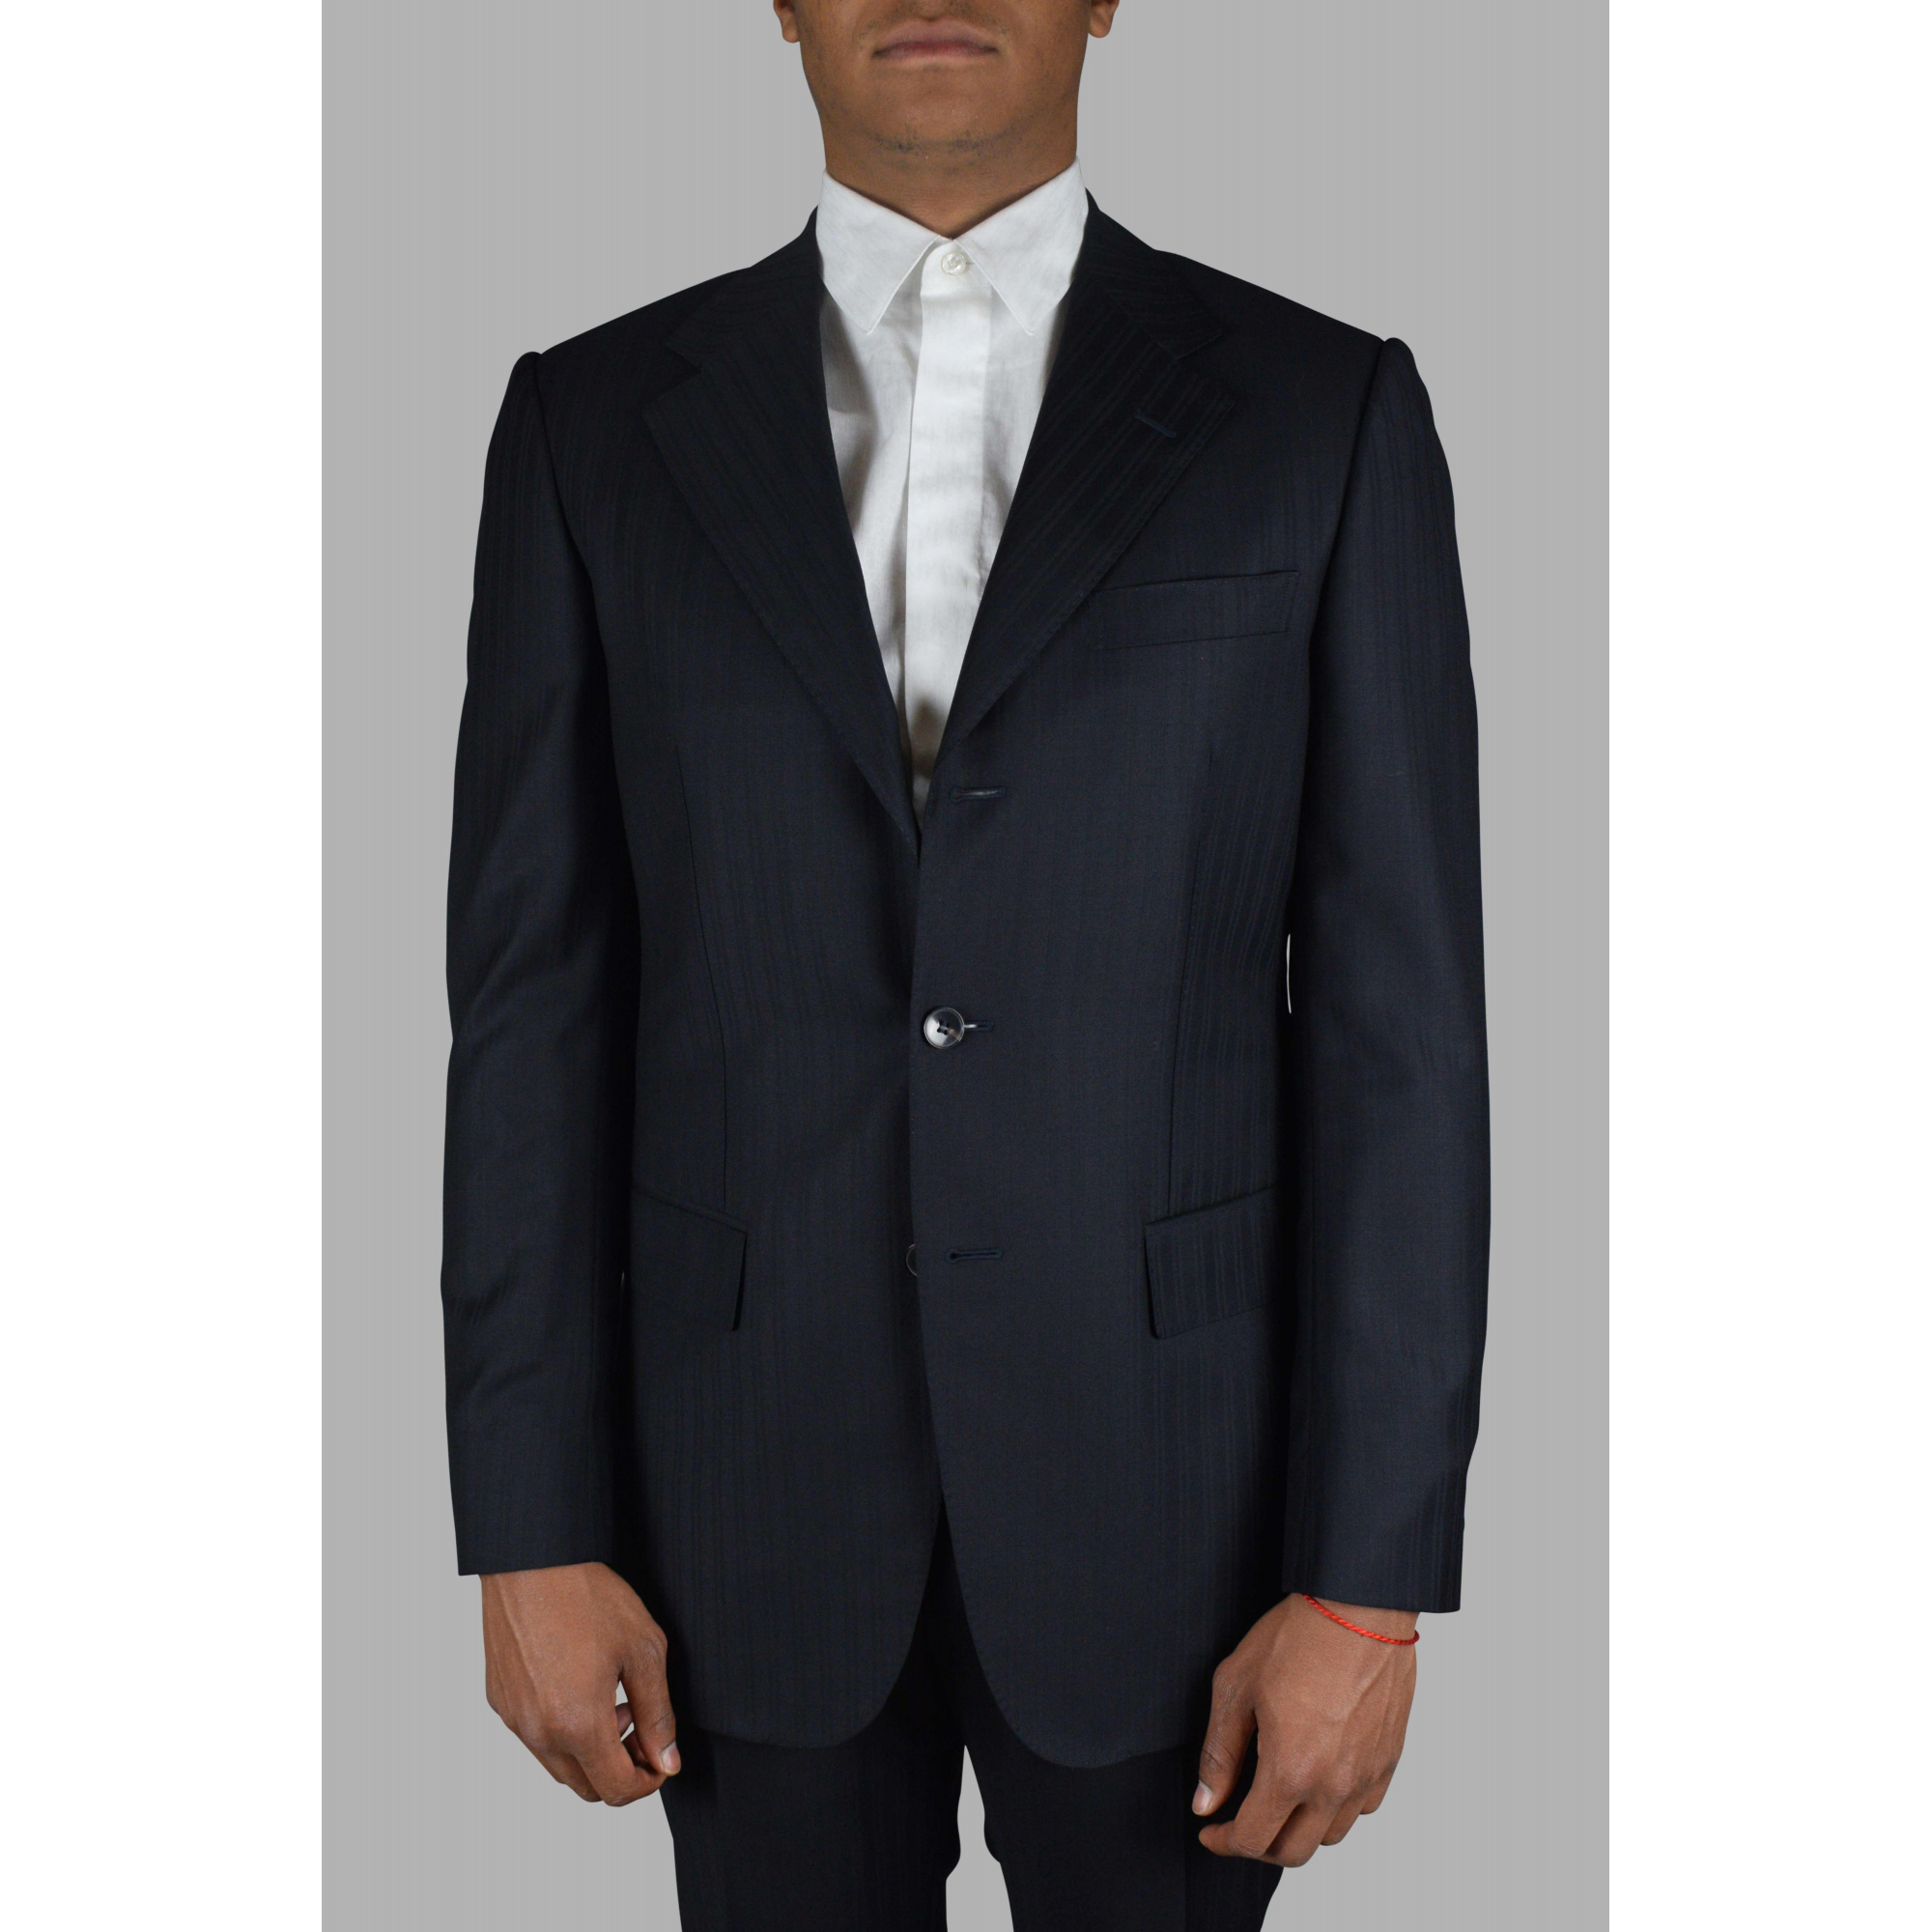 Gucci two-piece navy blue suit with tone-on-tone stripe duo patterns.